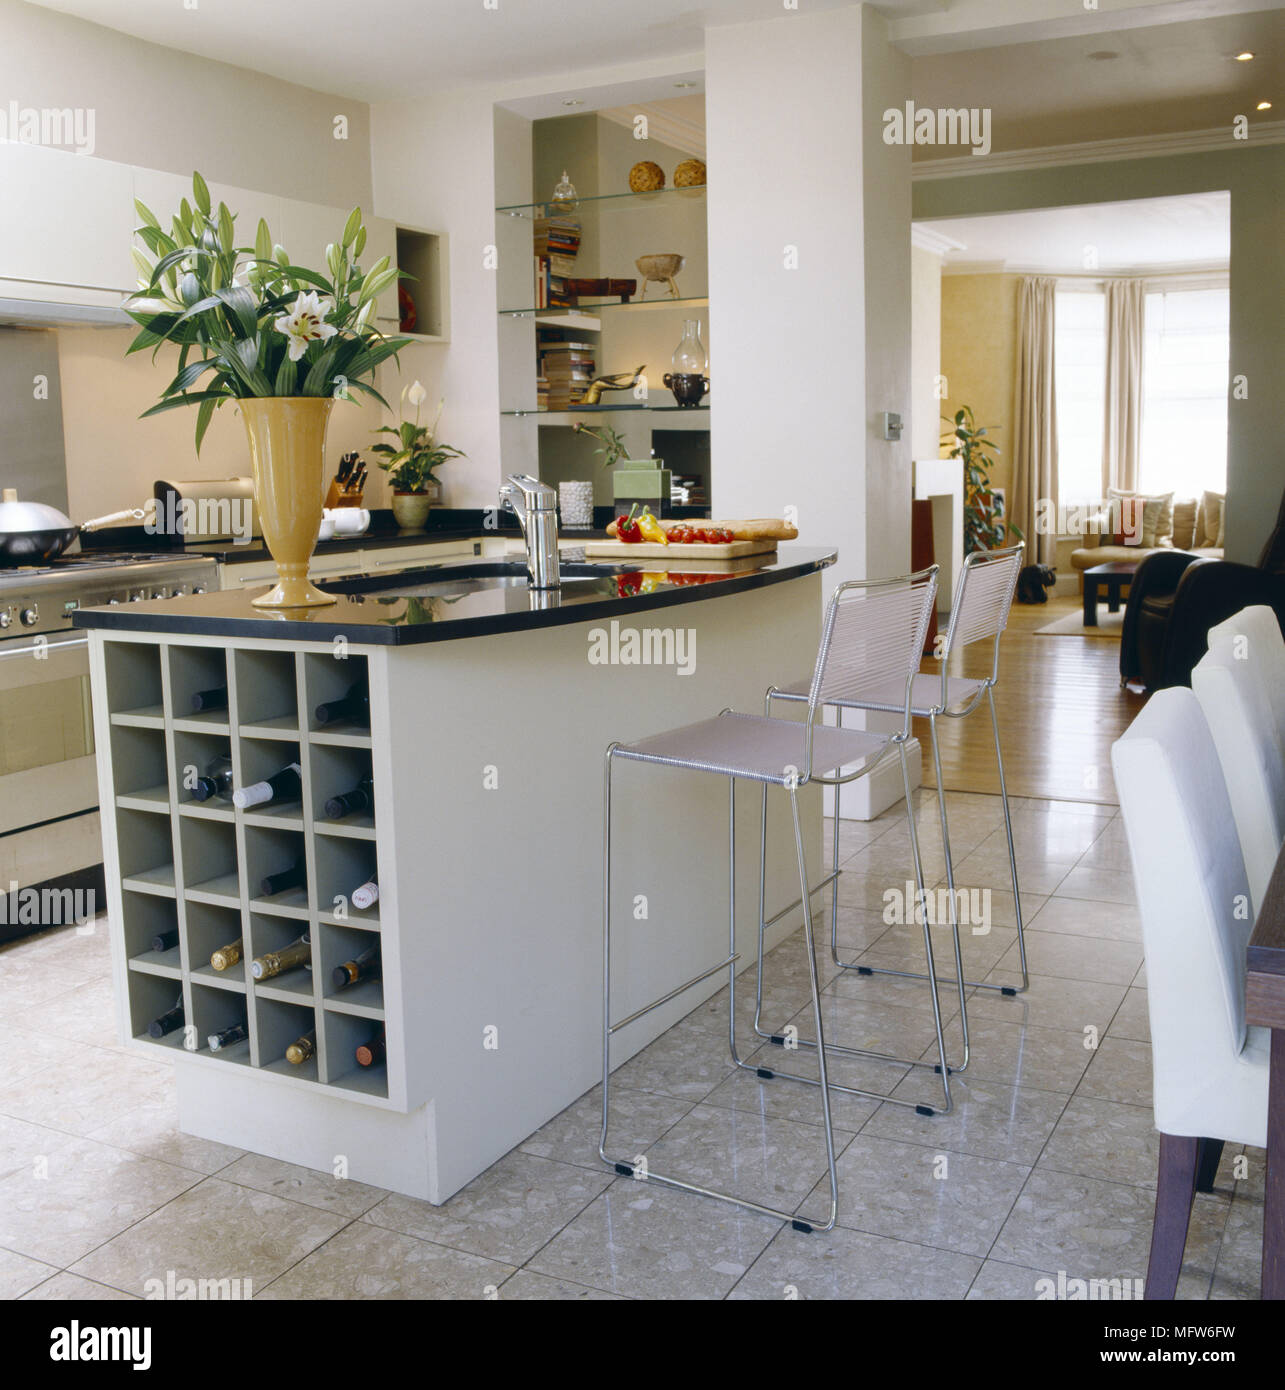 A modern kitchen with dining area breakfast bar unit wire stools ...